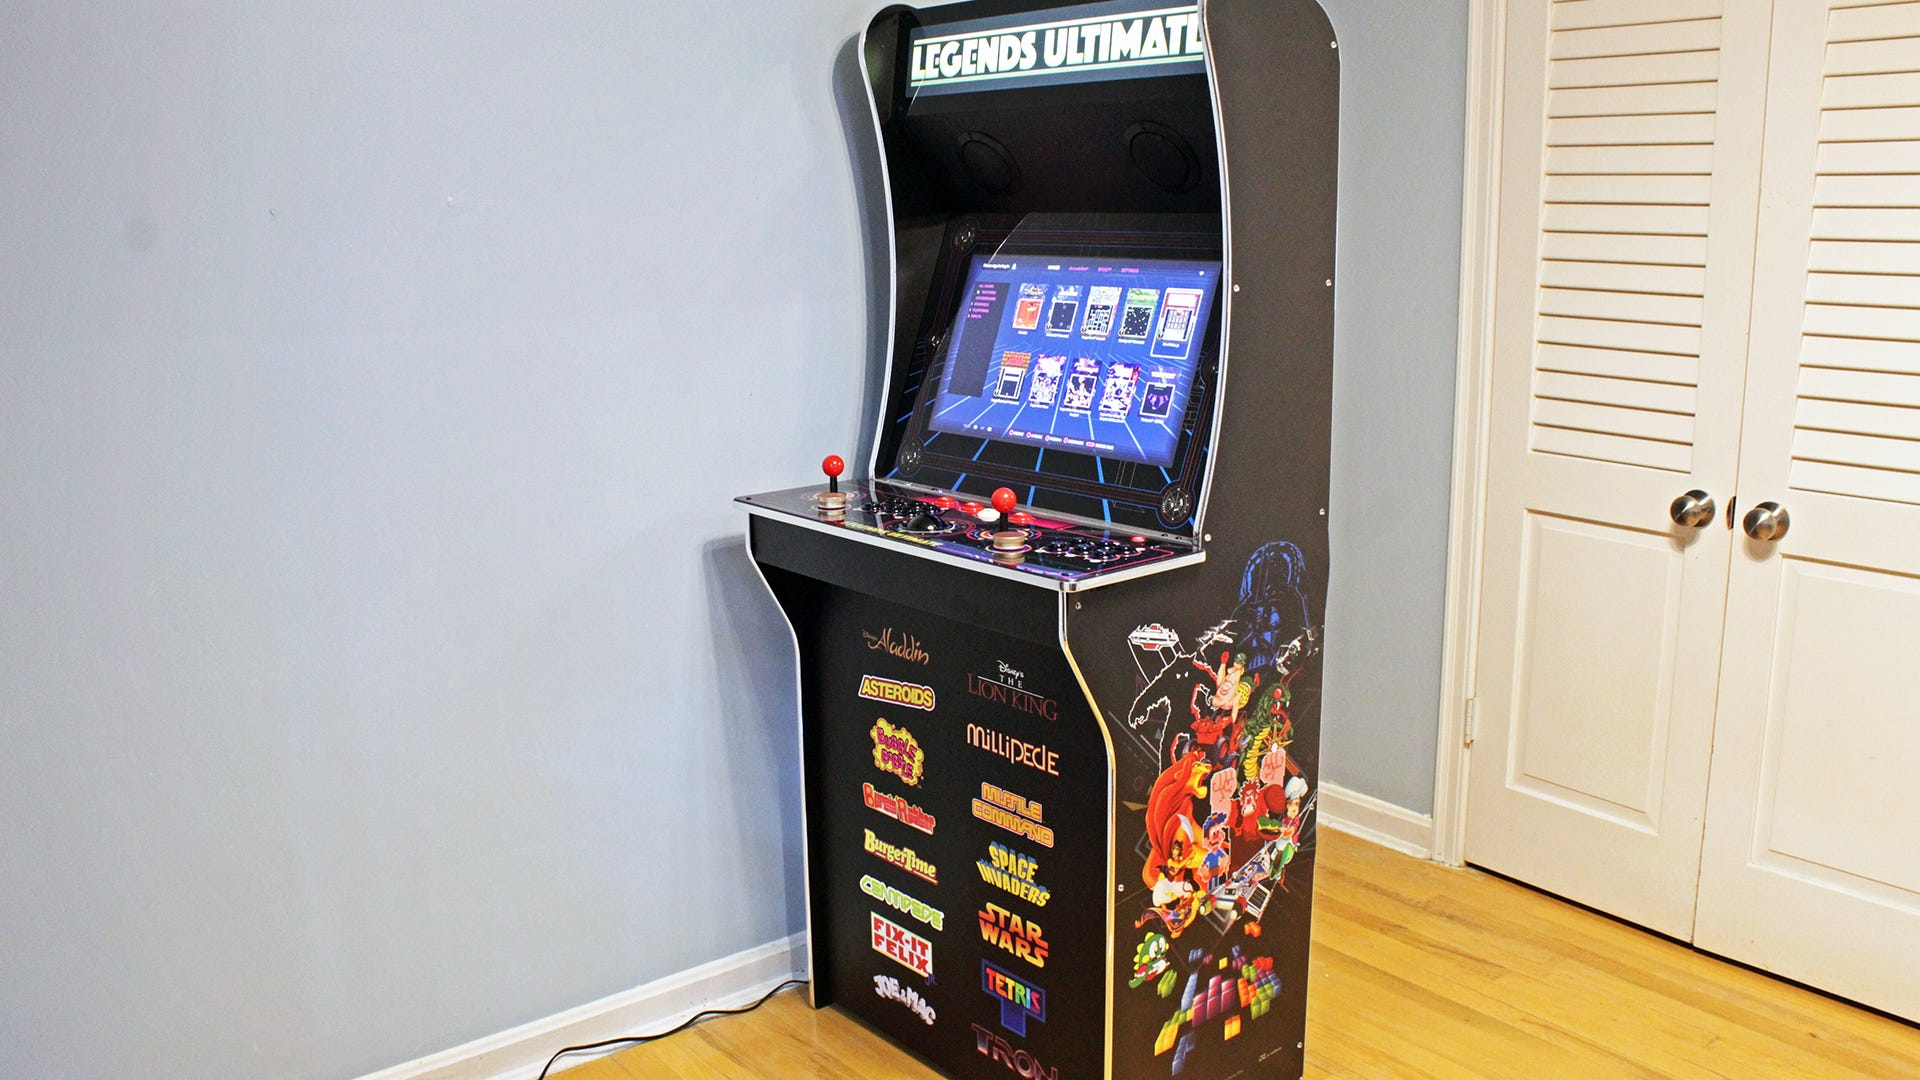 A three-quarter profile, showing artwork with various video game characters.